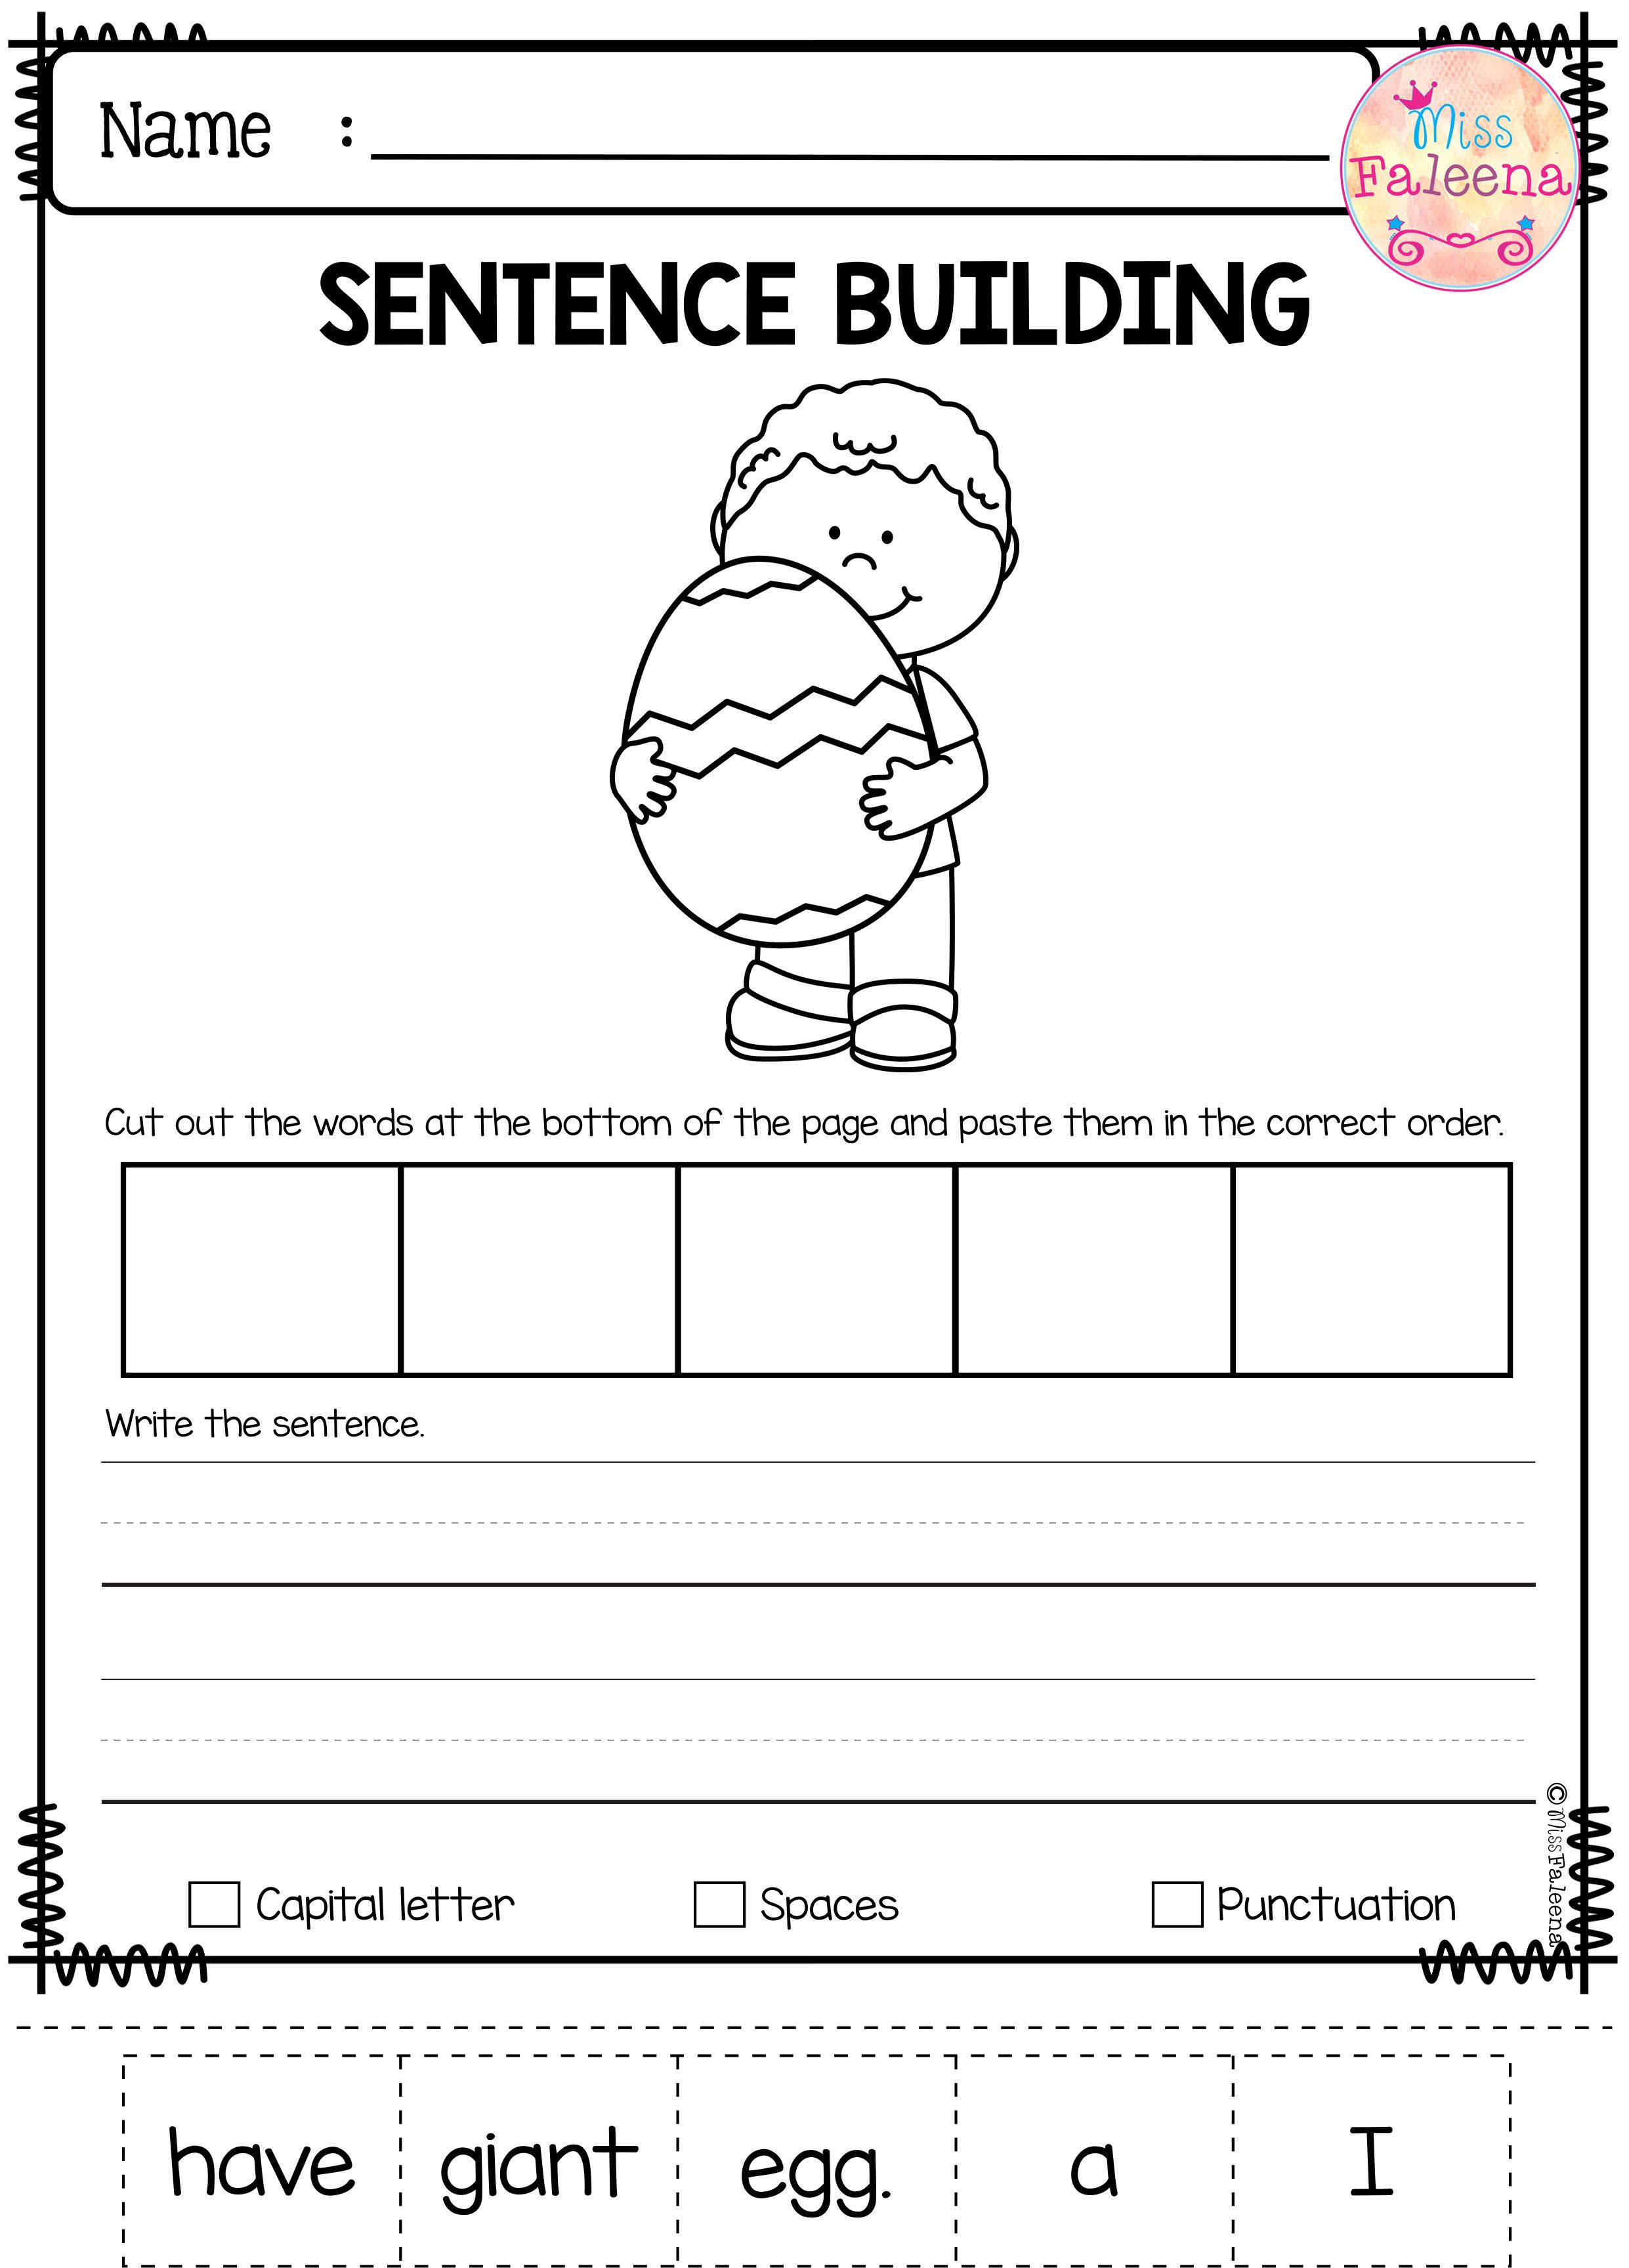 April Sentence Building Has 30 Pages Of Sentence Building Worksheets This Product Will Teach